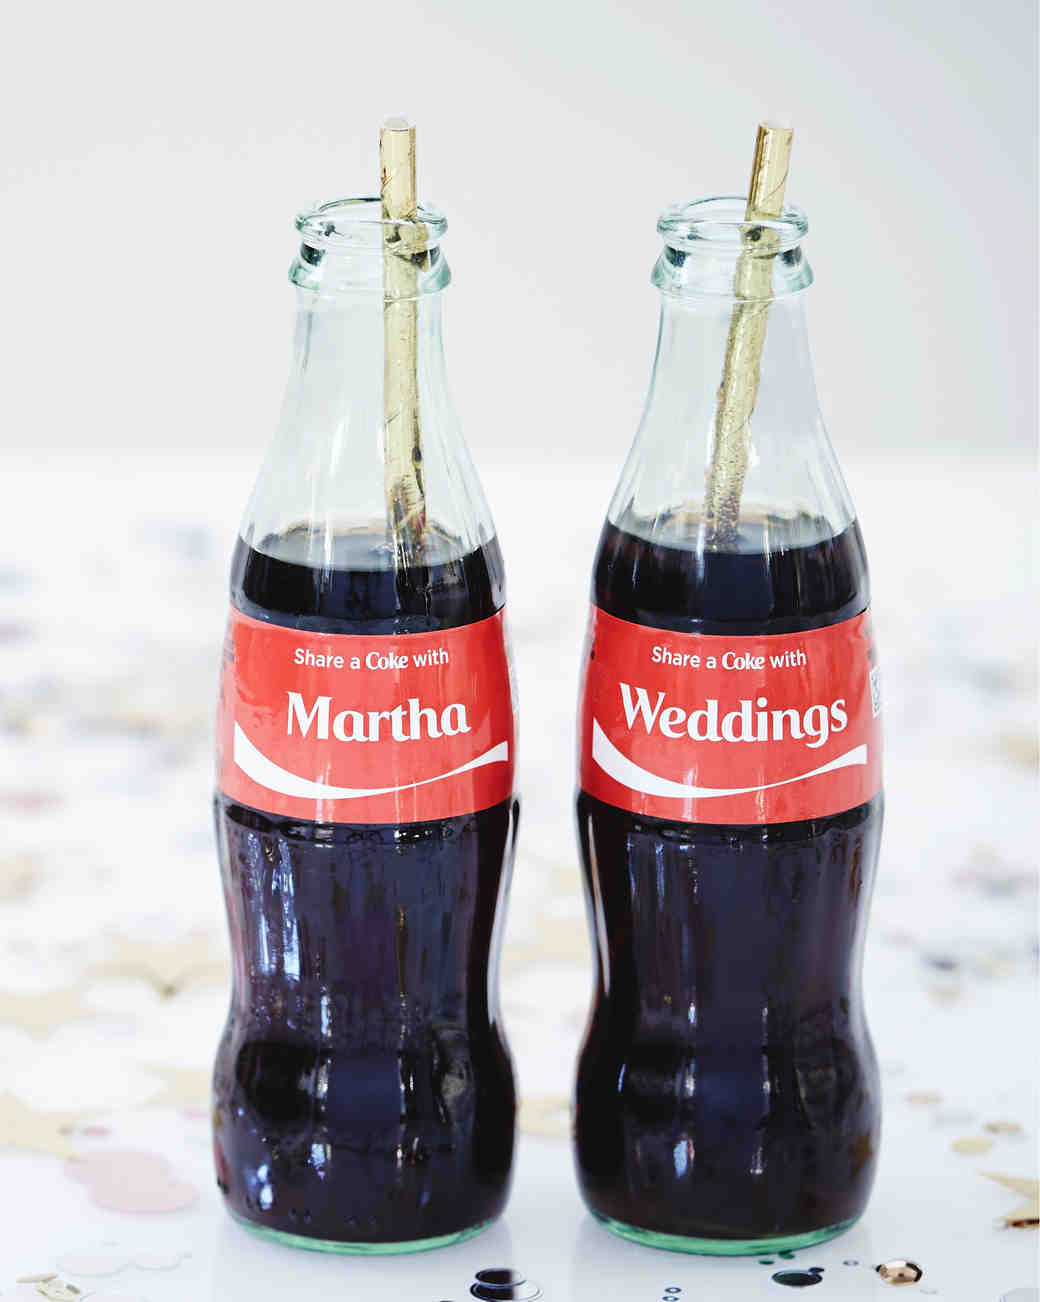 martha-weddings-party-2015-christian-oth-coke-151012-0088-1015.jpg